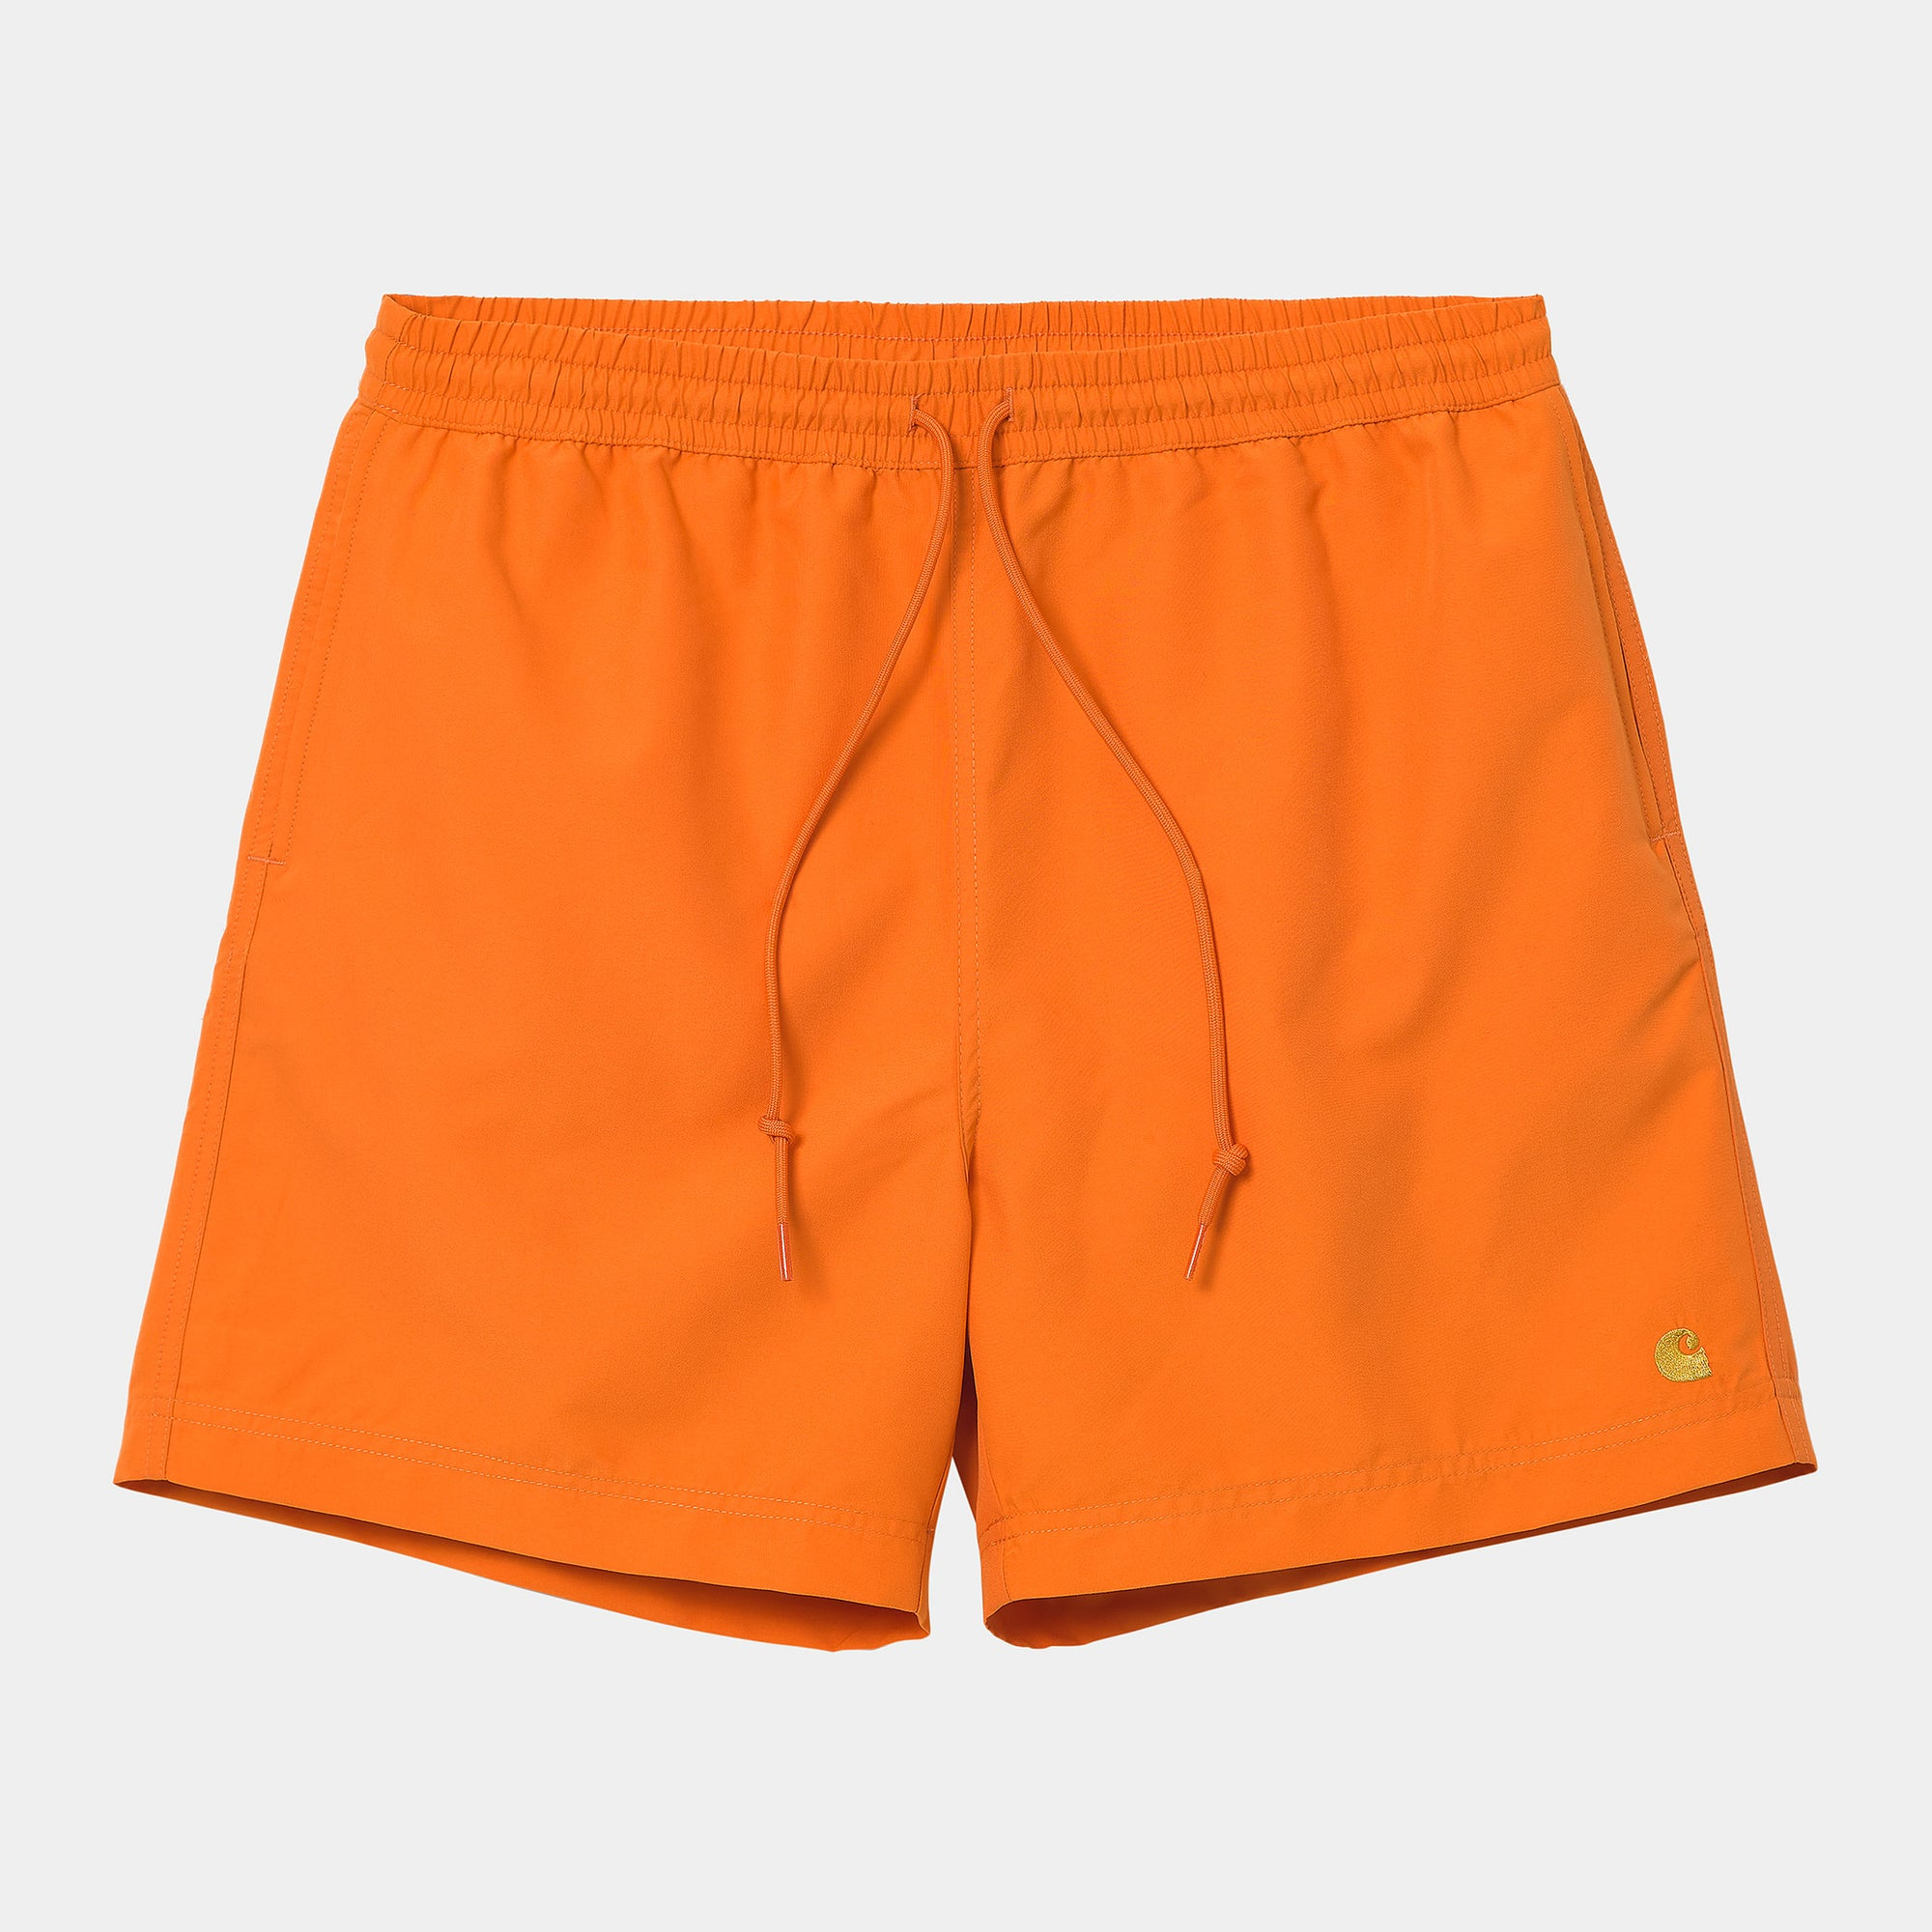 Carhartt WIP - Chase Swim Trunks Orange